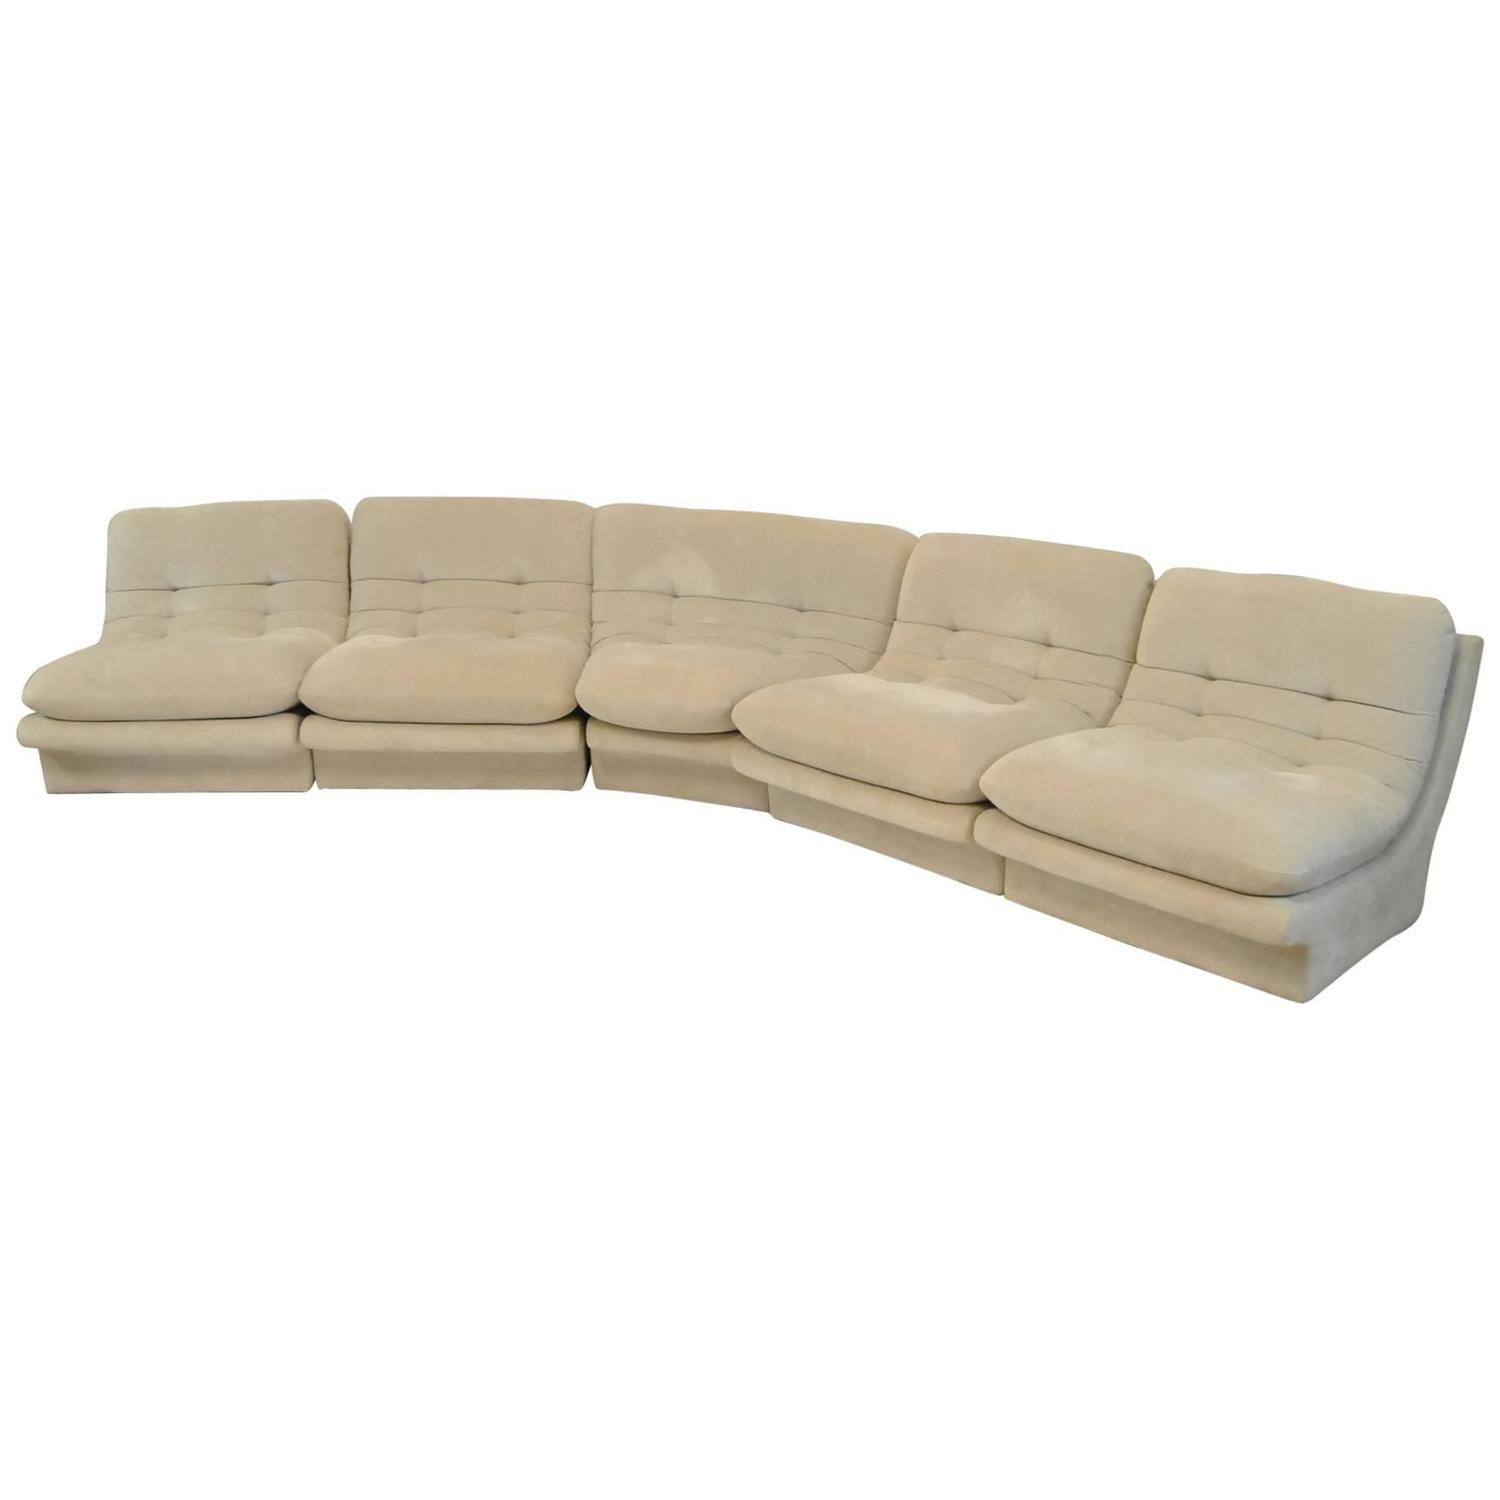 Dove Grey Five Piece Sectional Sofa by Preview style of Vladimir